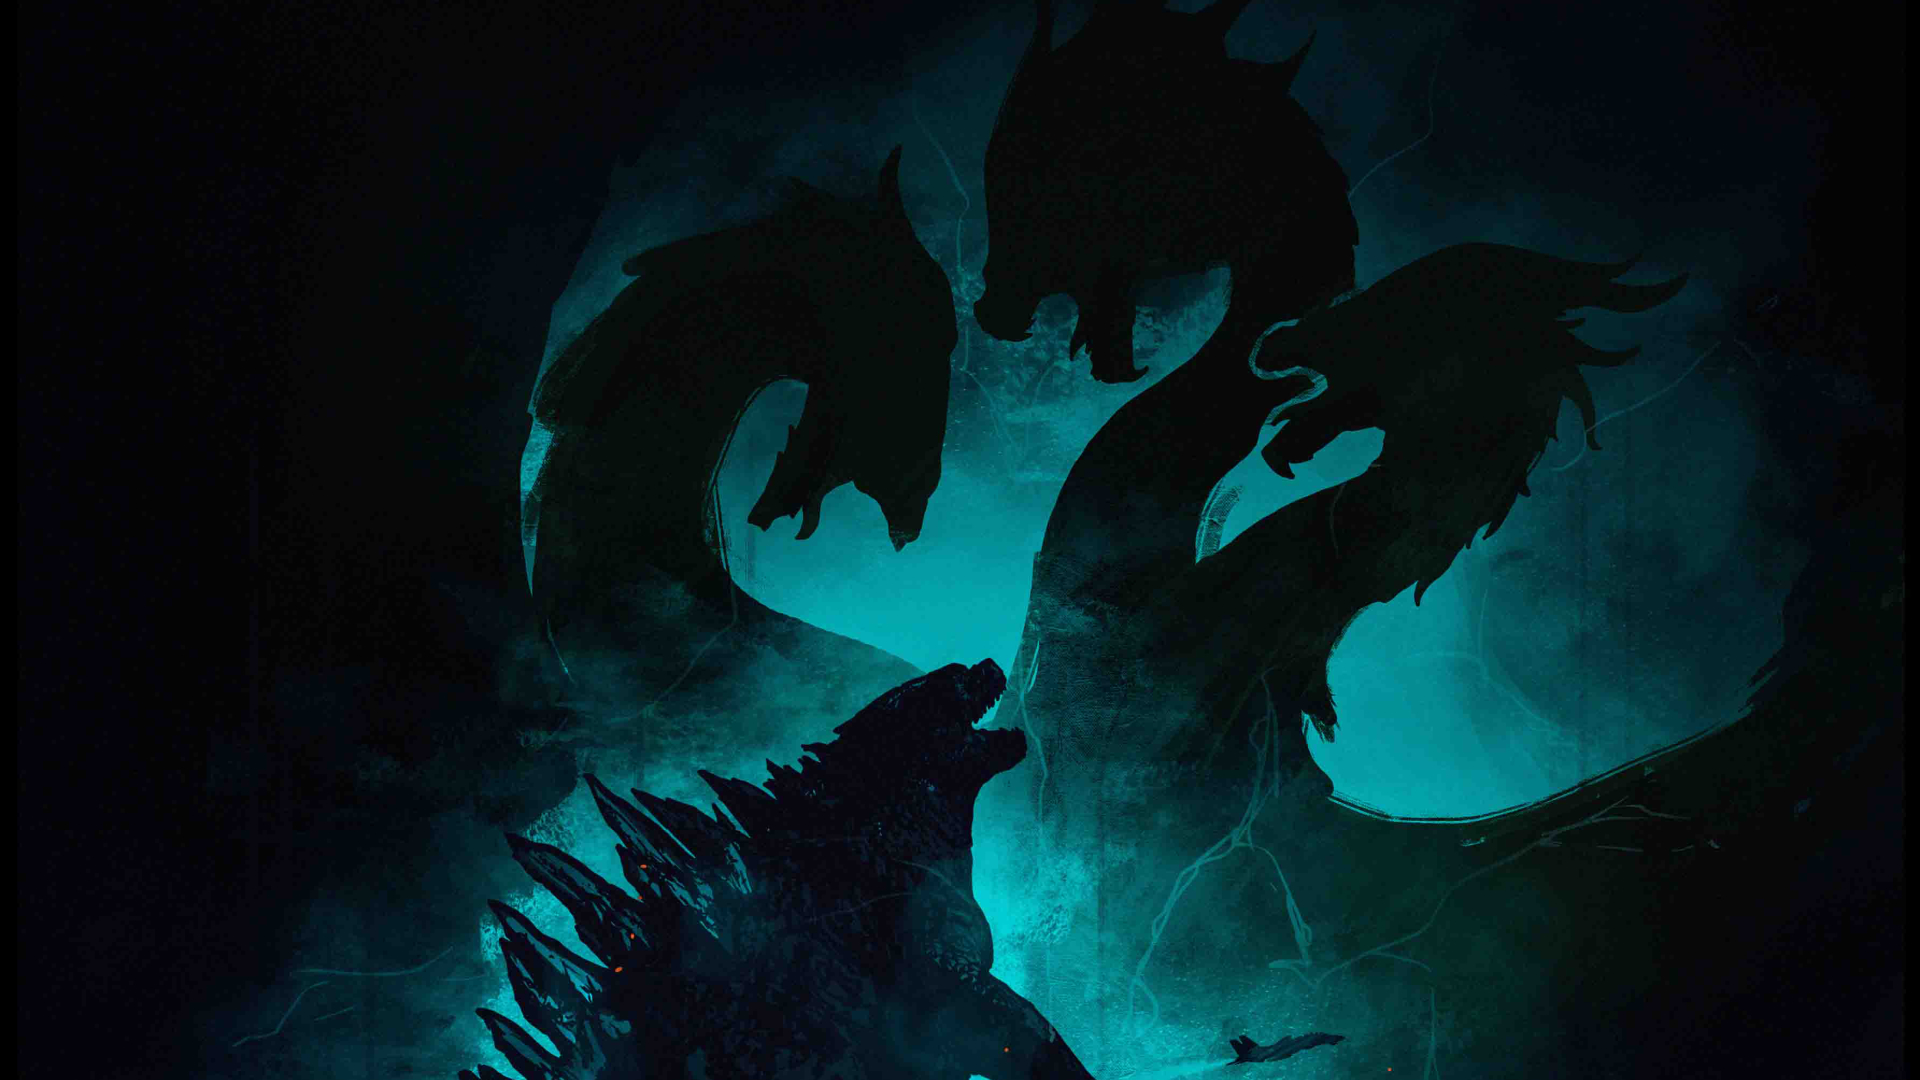 1920x1080 4k Poster Of Godzilla King Of The Monsters 1080p